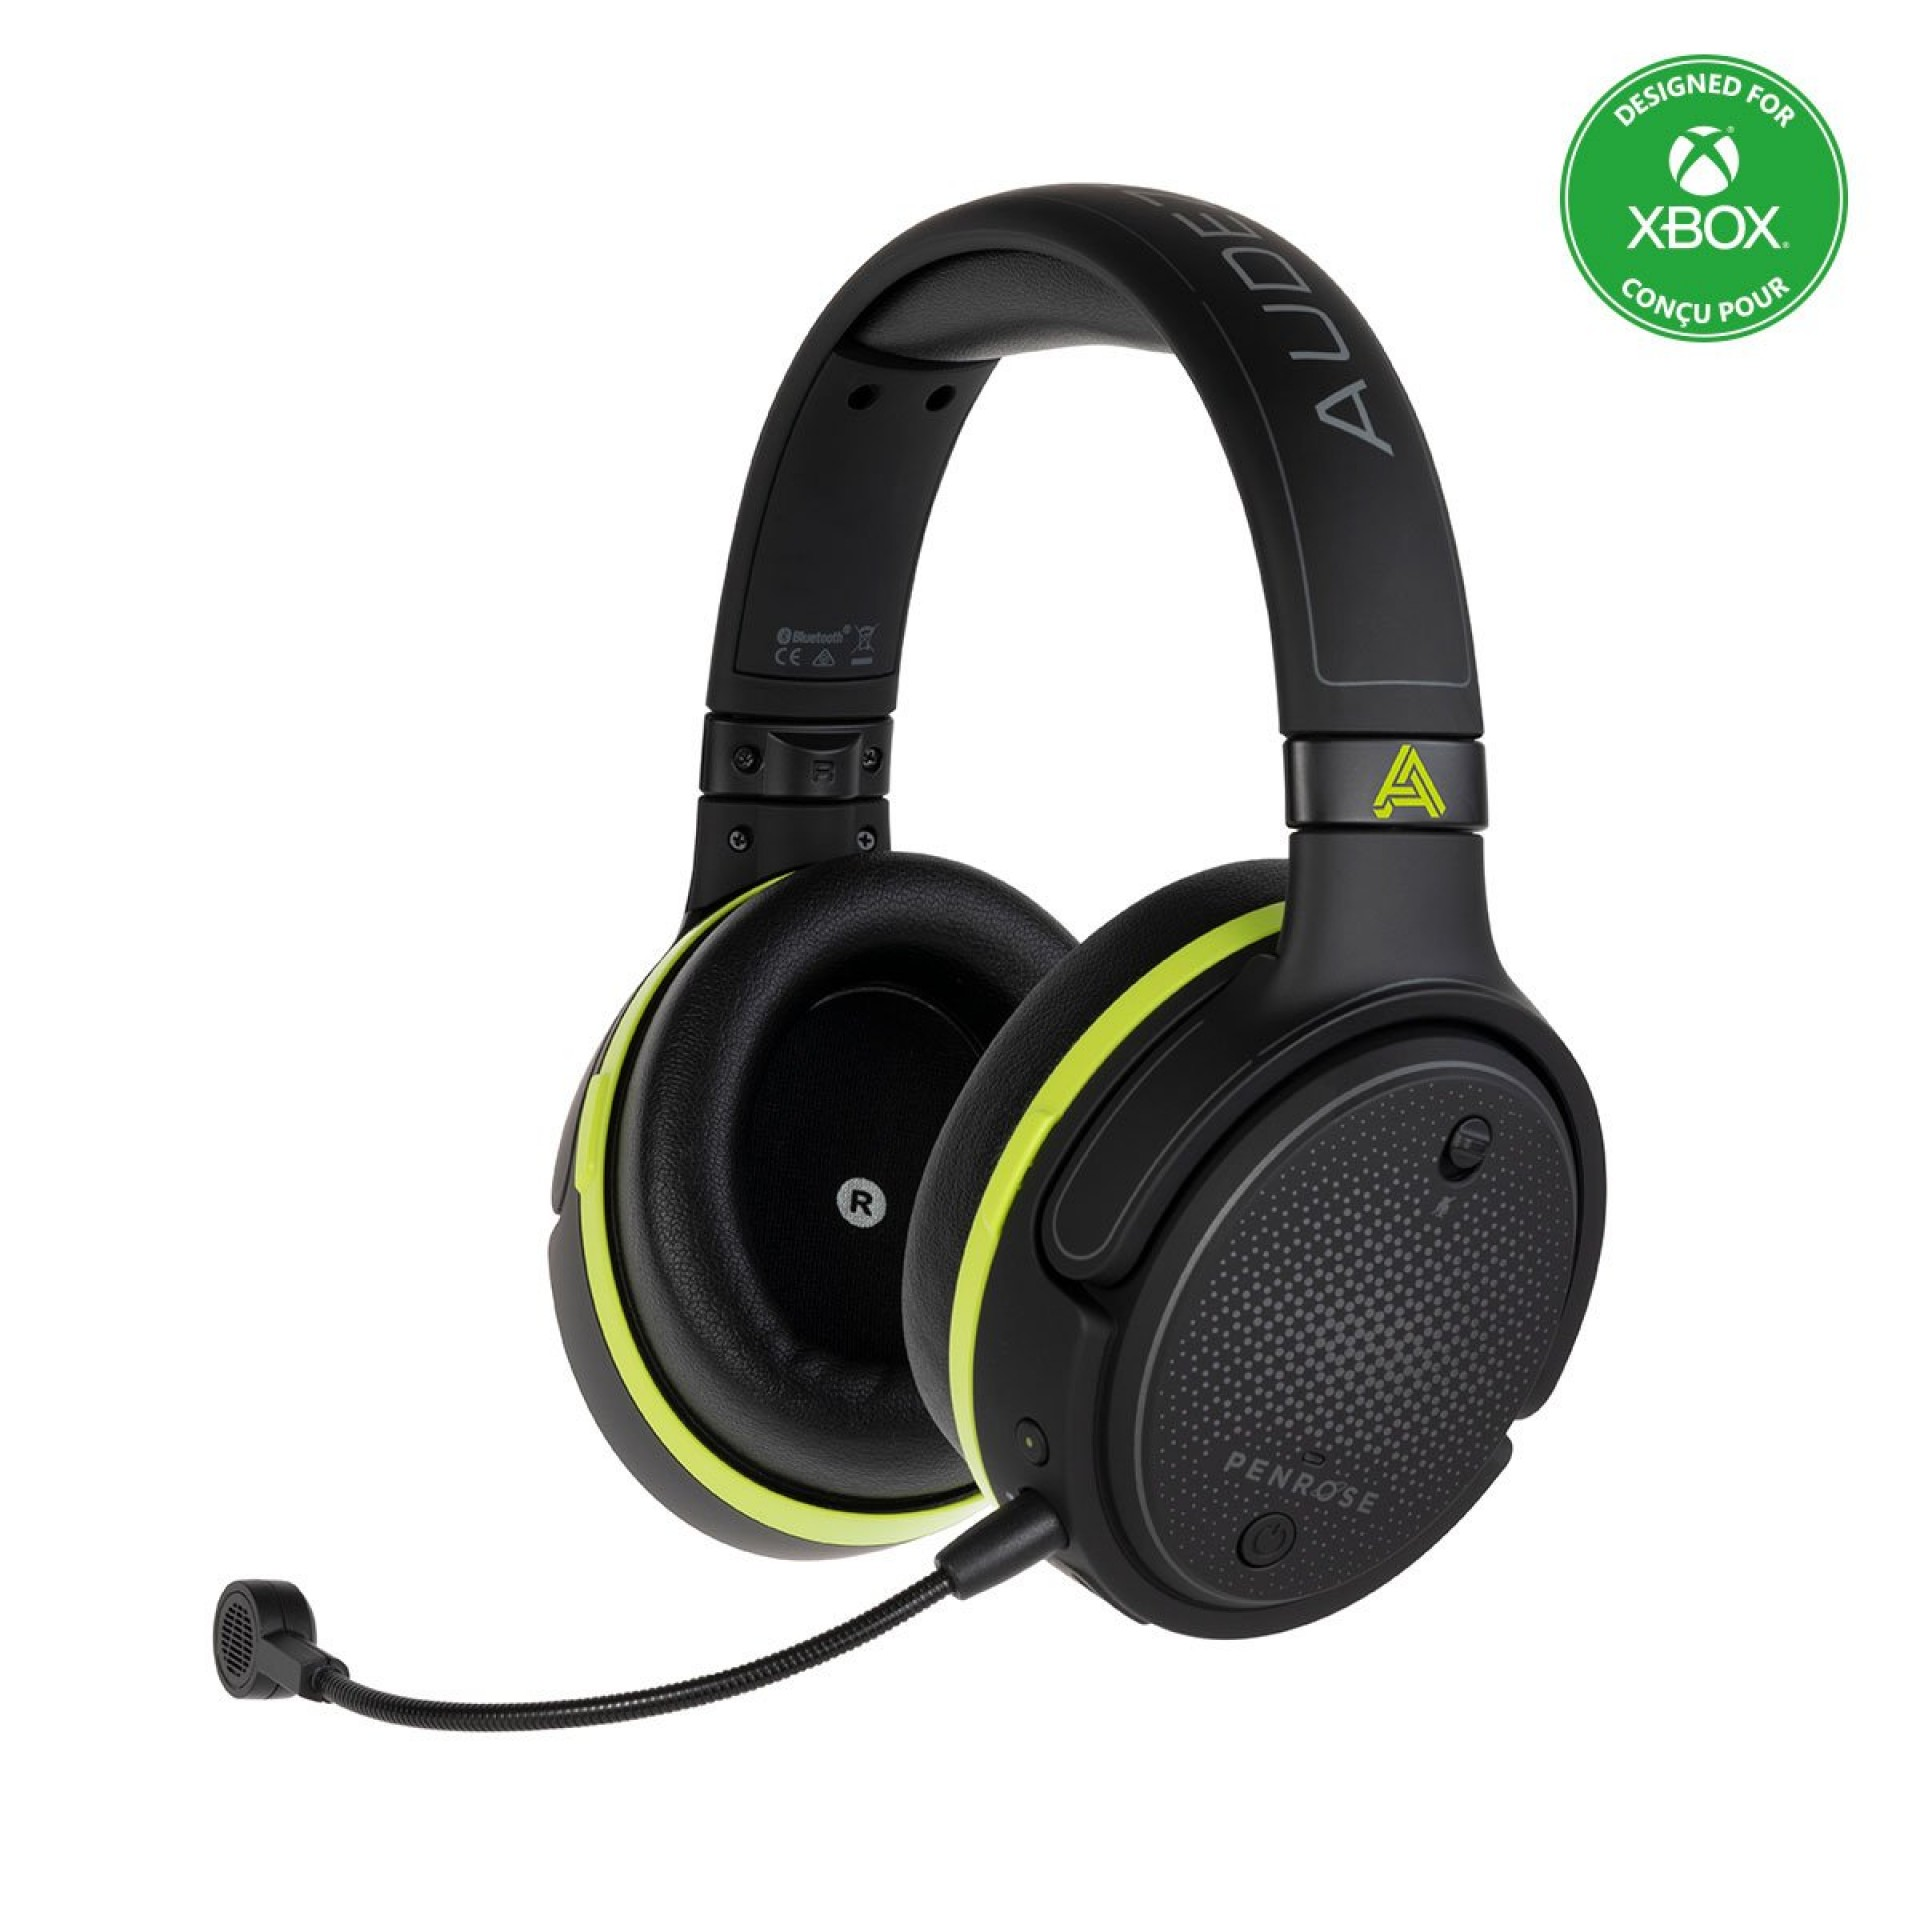 https://www.player.rs/images/products/big/31064.jpg